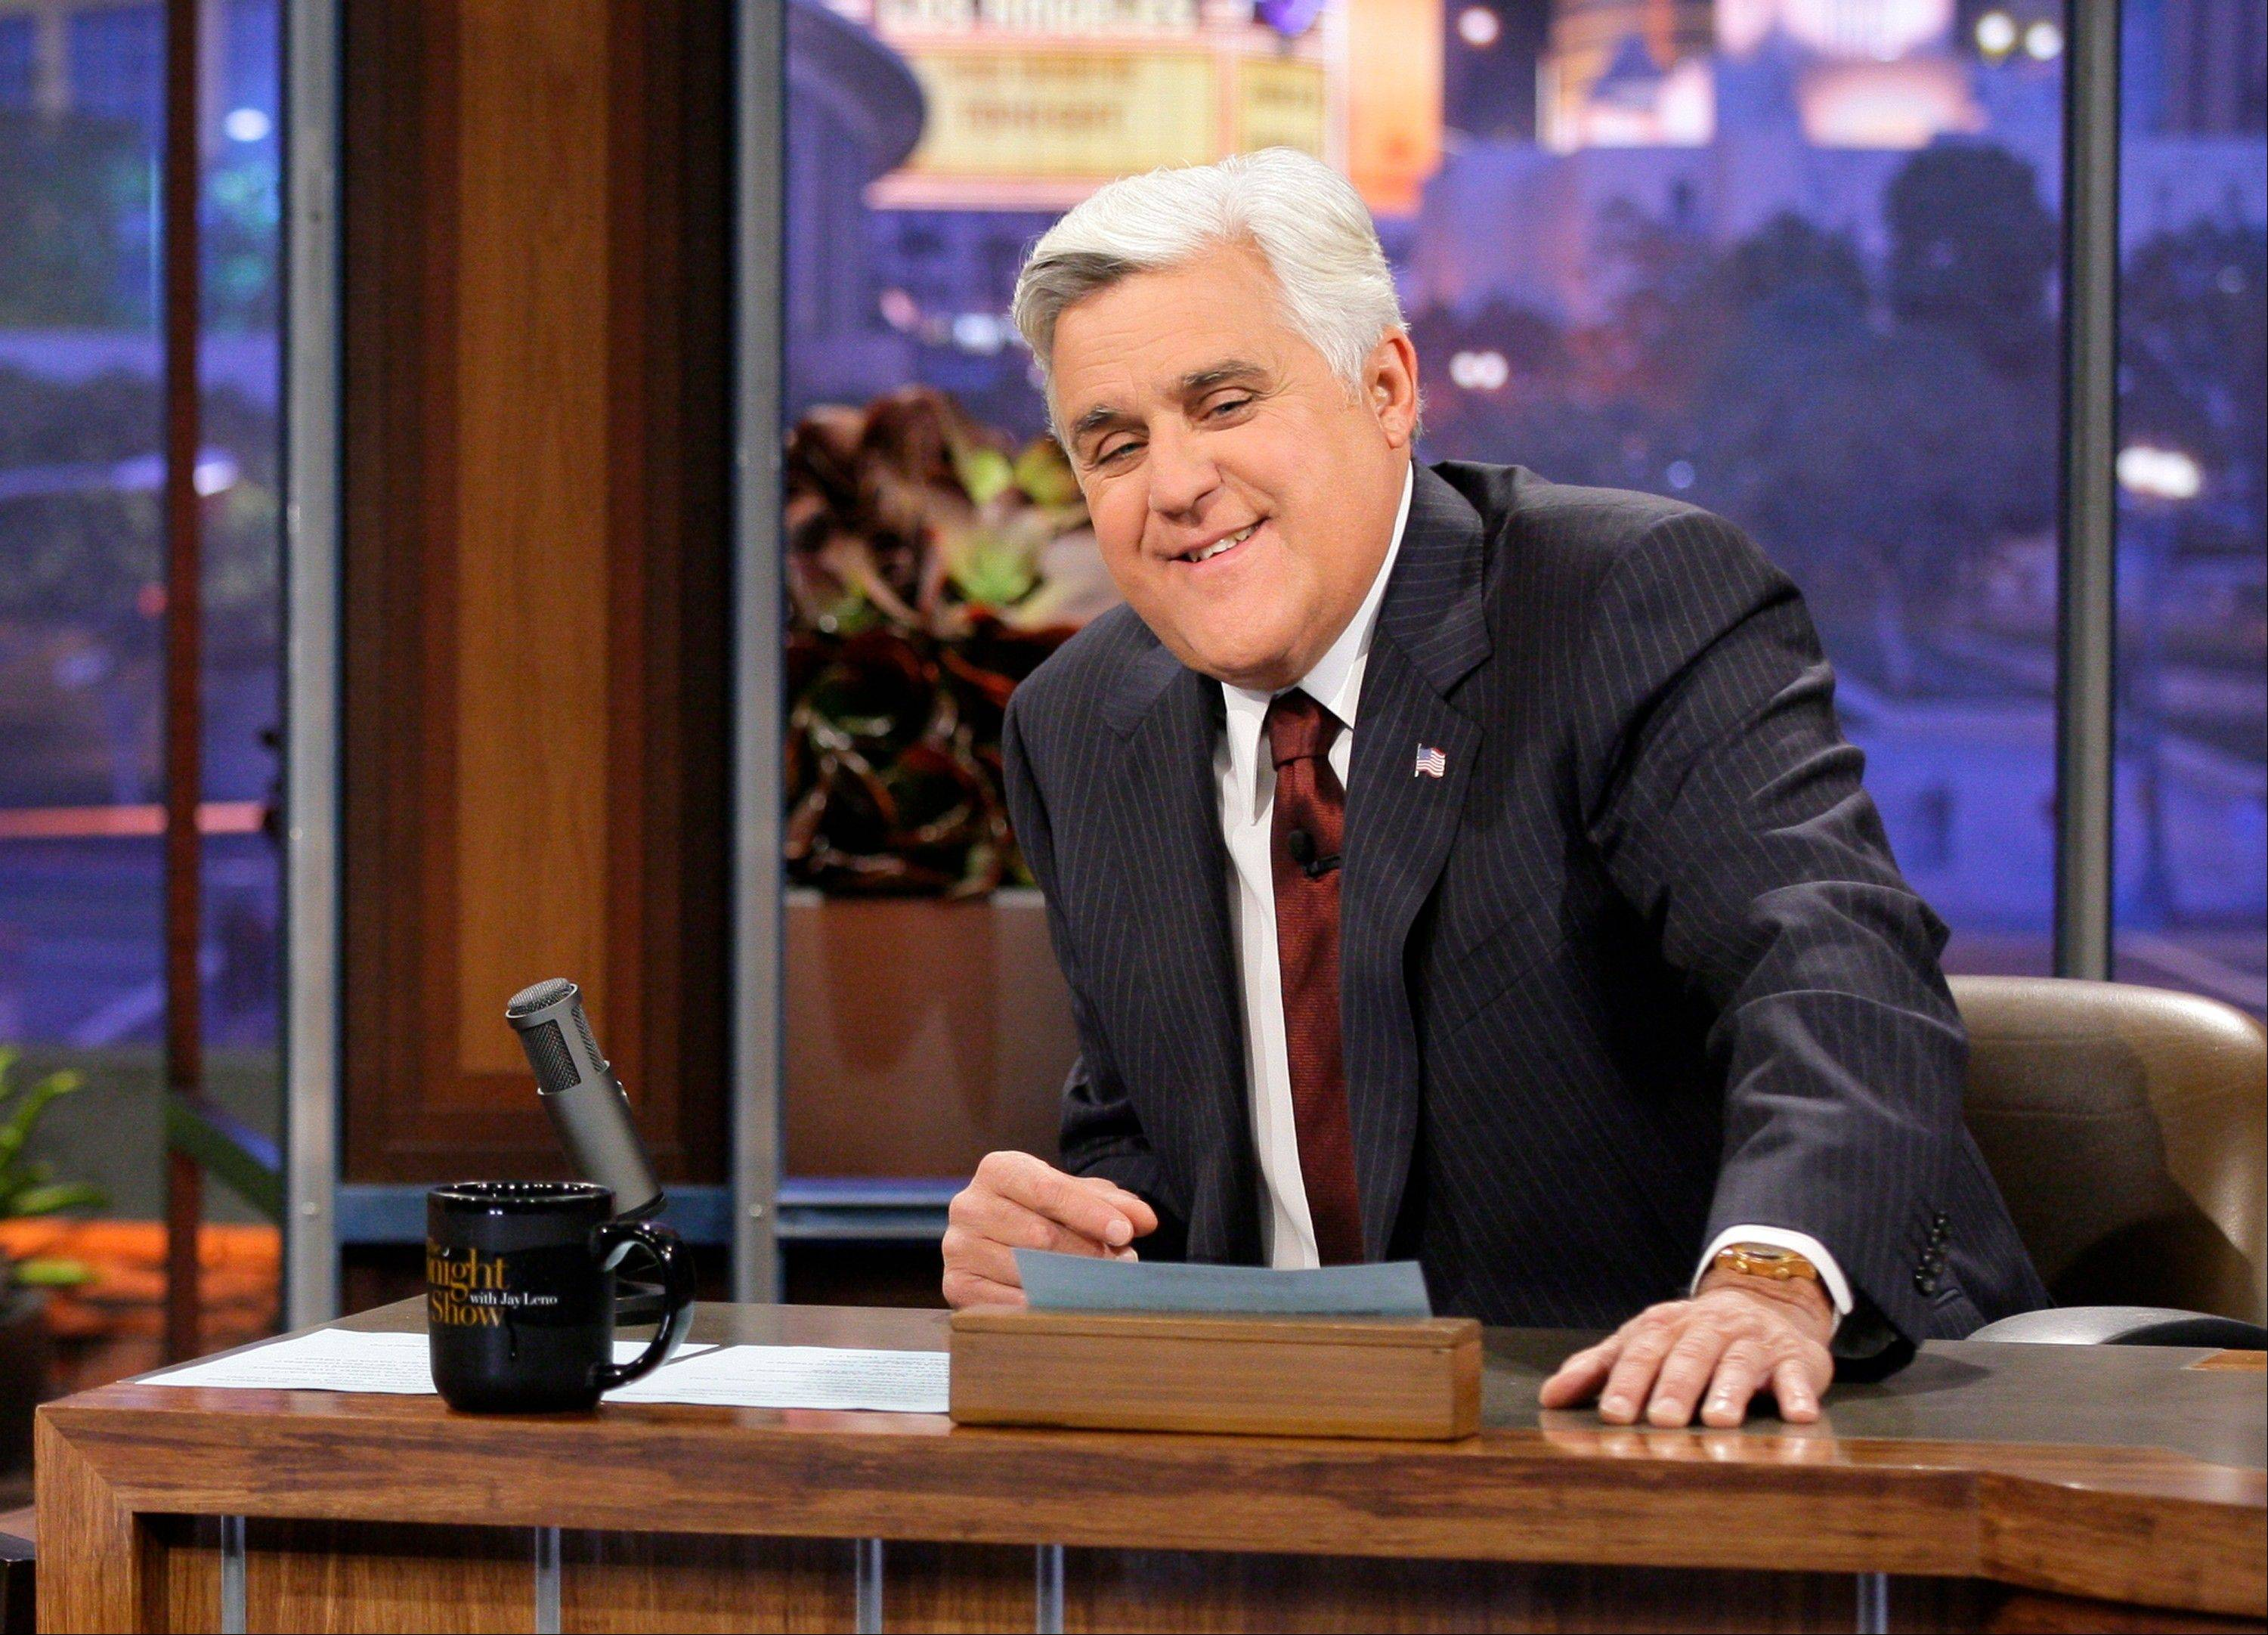 "Jay Leno, host of ""The Tonight Show with Jay Leno,"" will end his 22-year run as host the first week of February. His successor Jimmy Fallon will be one of his last guests and Billy Crystal, who was Leno's first guest, will fill the last guest slot on Feb. 6."